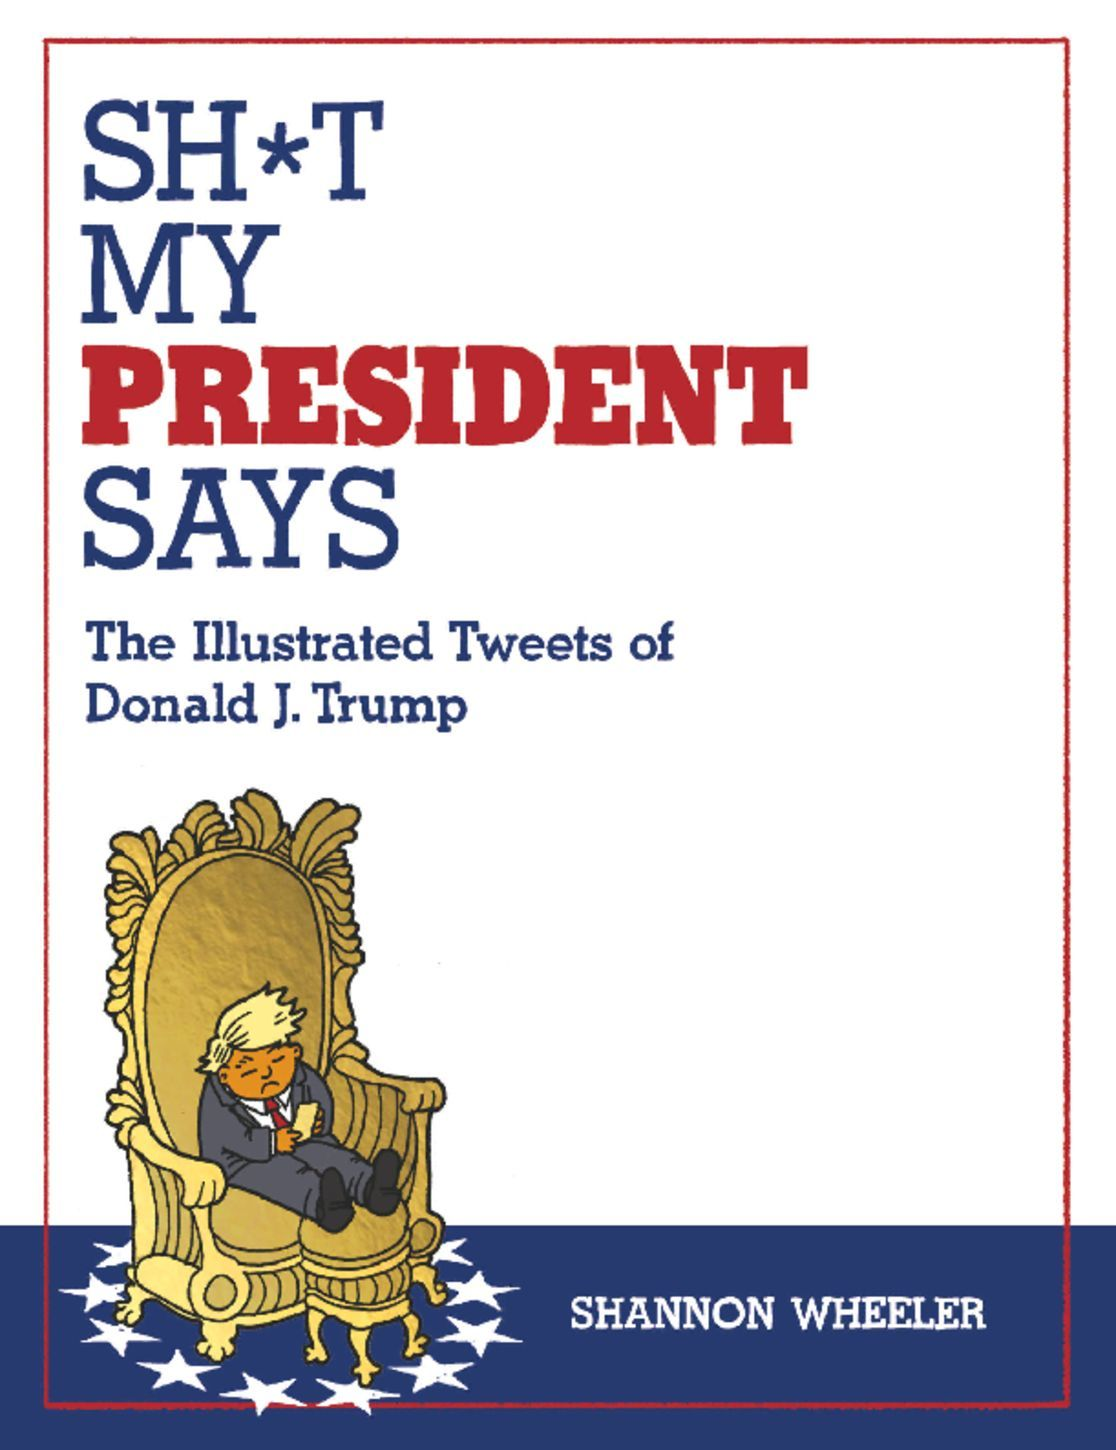 Sht My President Says The Illustrated Tweets of Donald J Trump Digital